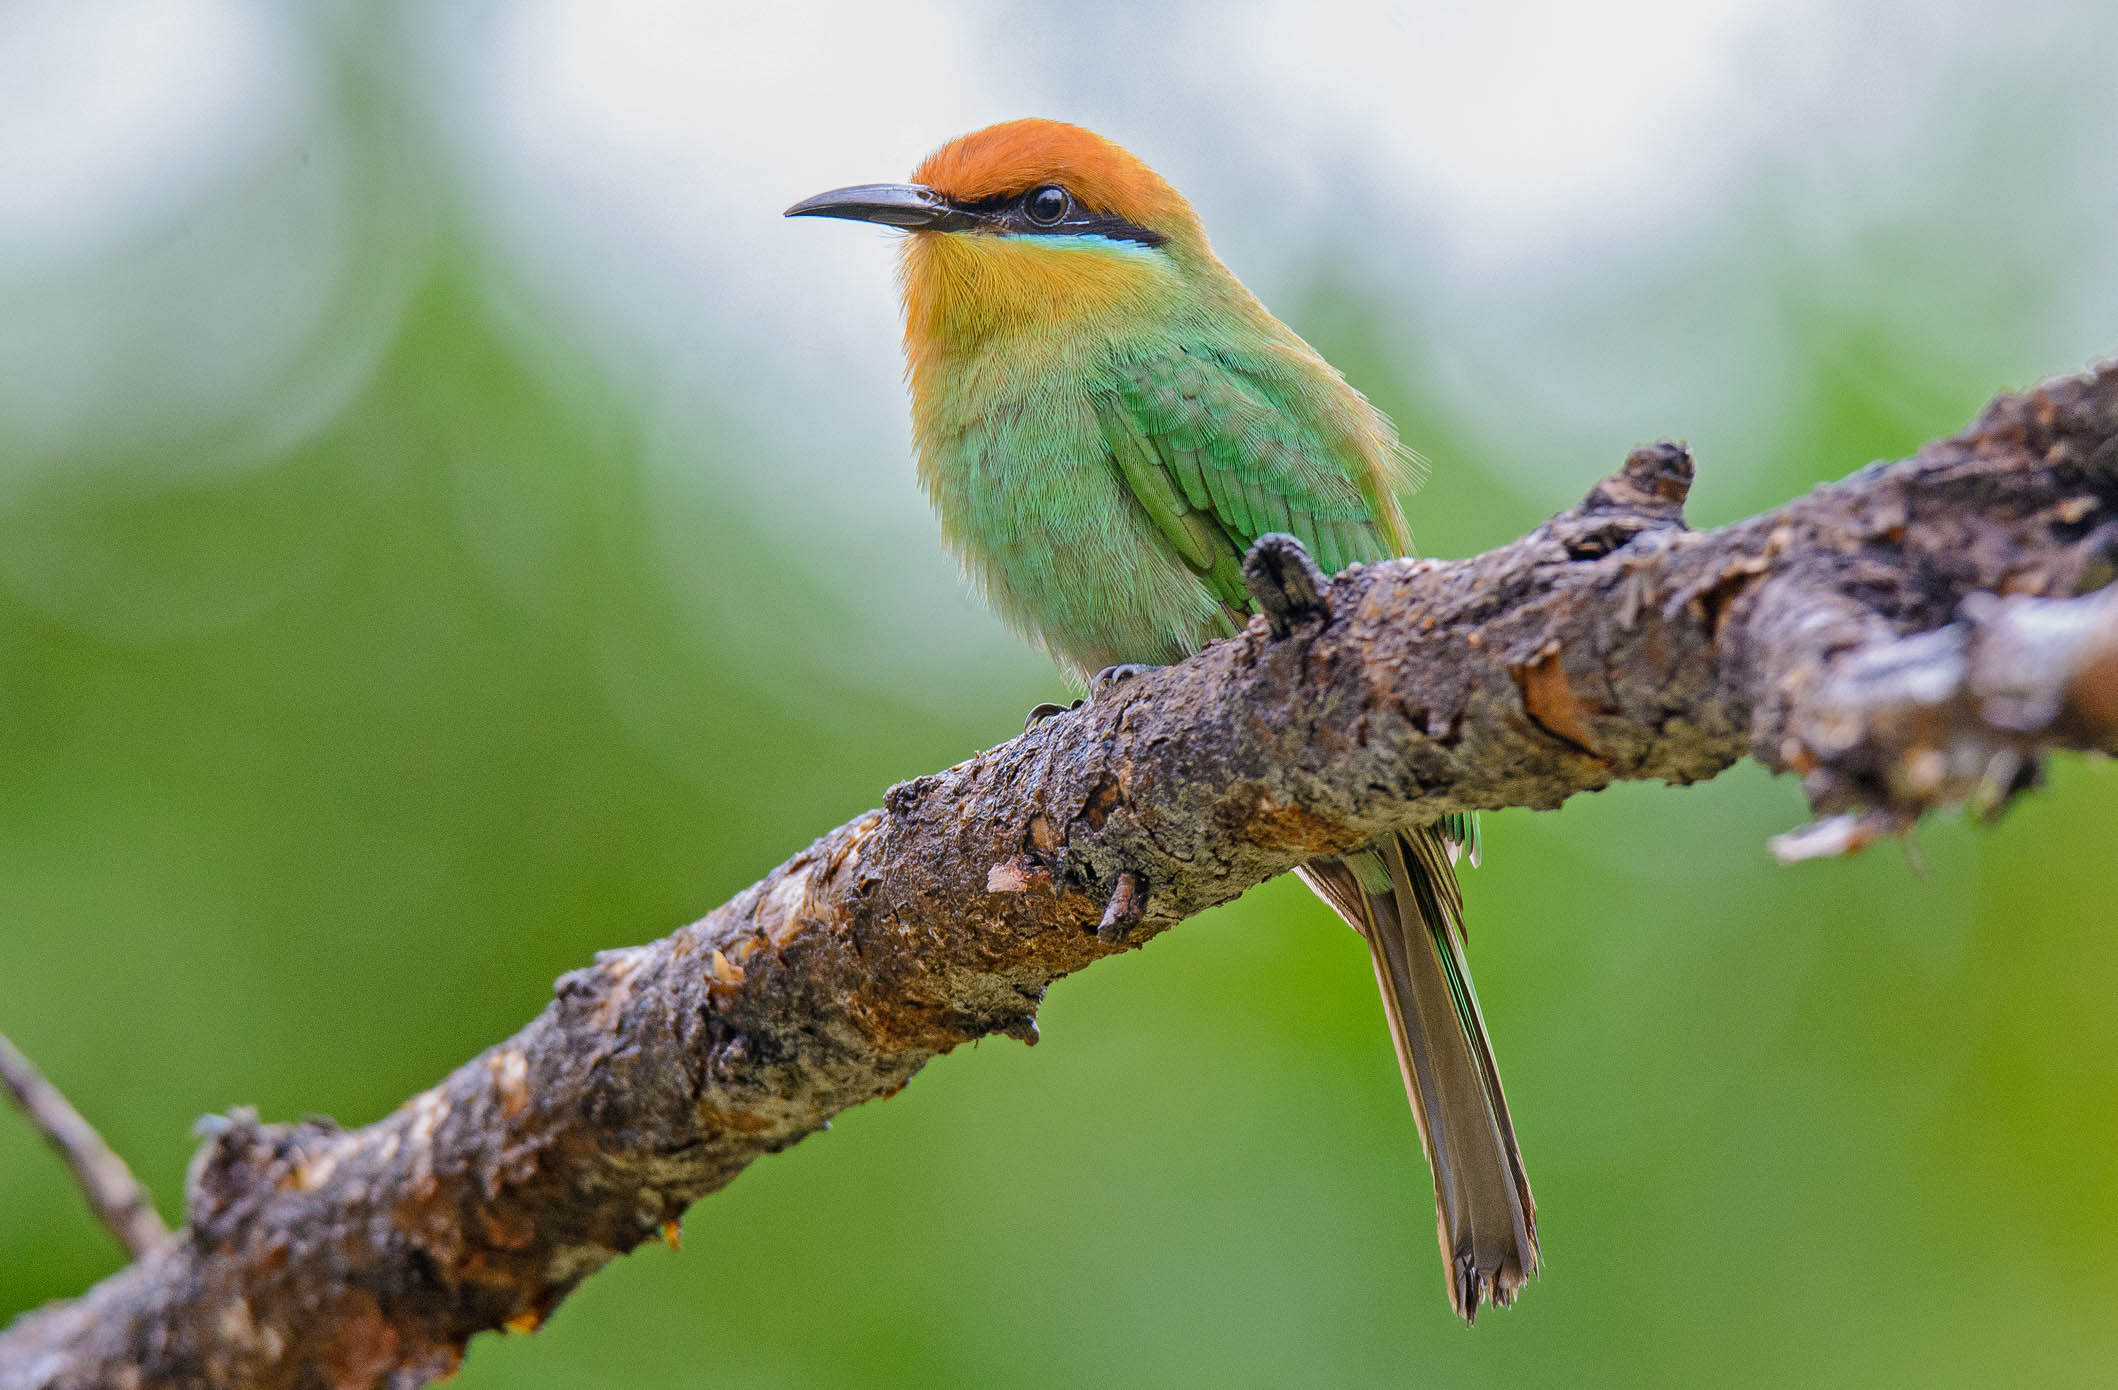 Birding Tour Malawi: 15-day Birding Adventure December 2019